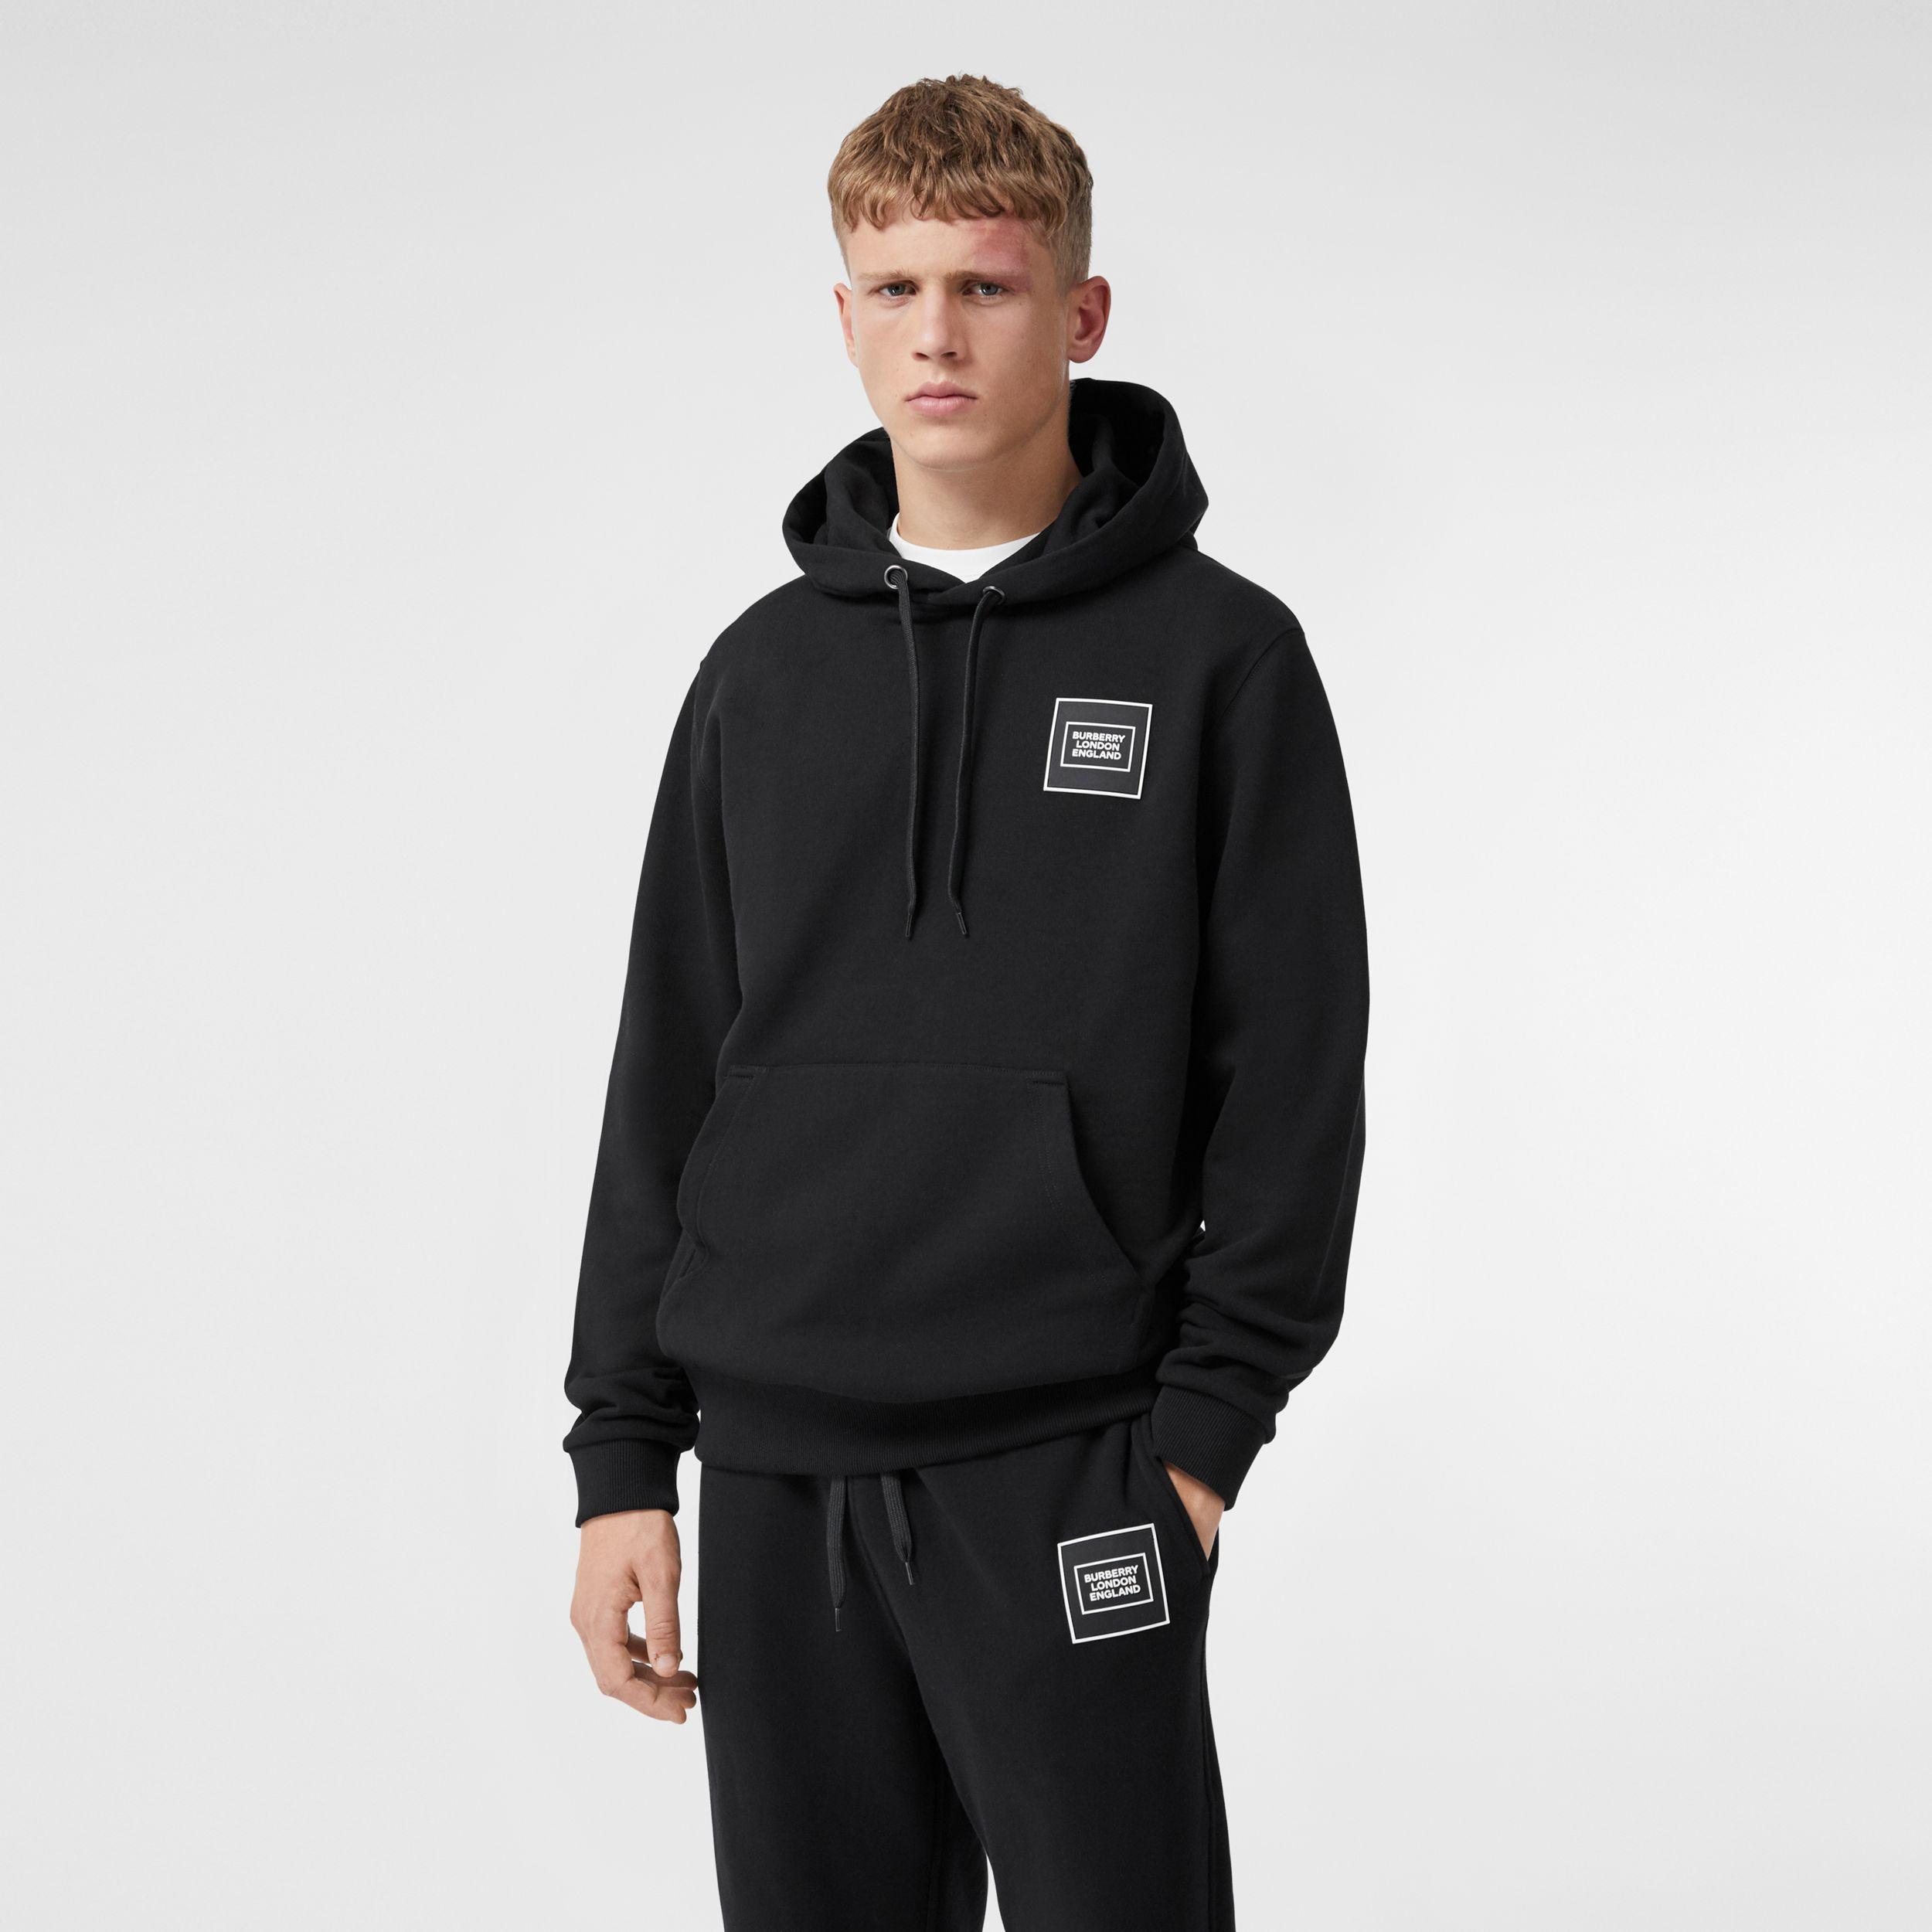 Logo Appliqué Cotton Hoodie in Black - Men | Burberry Hong Kong S.A.R. - 1